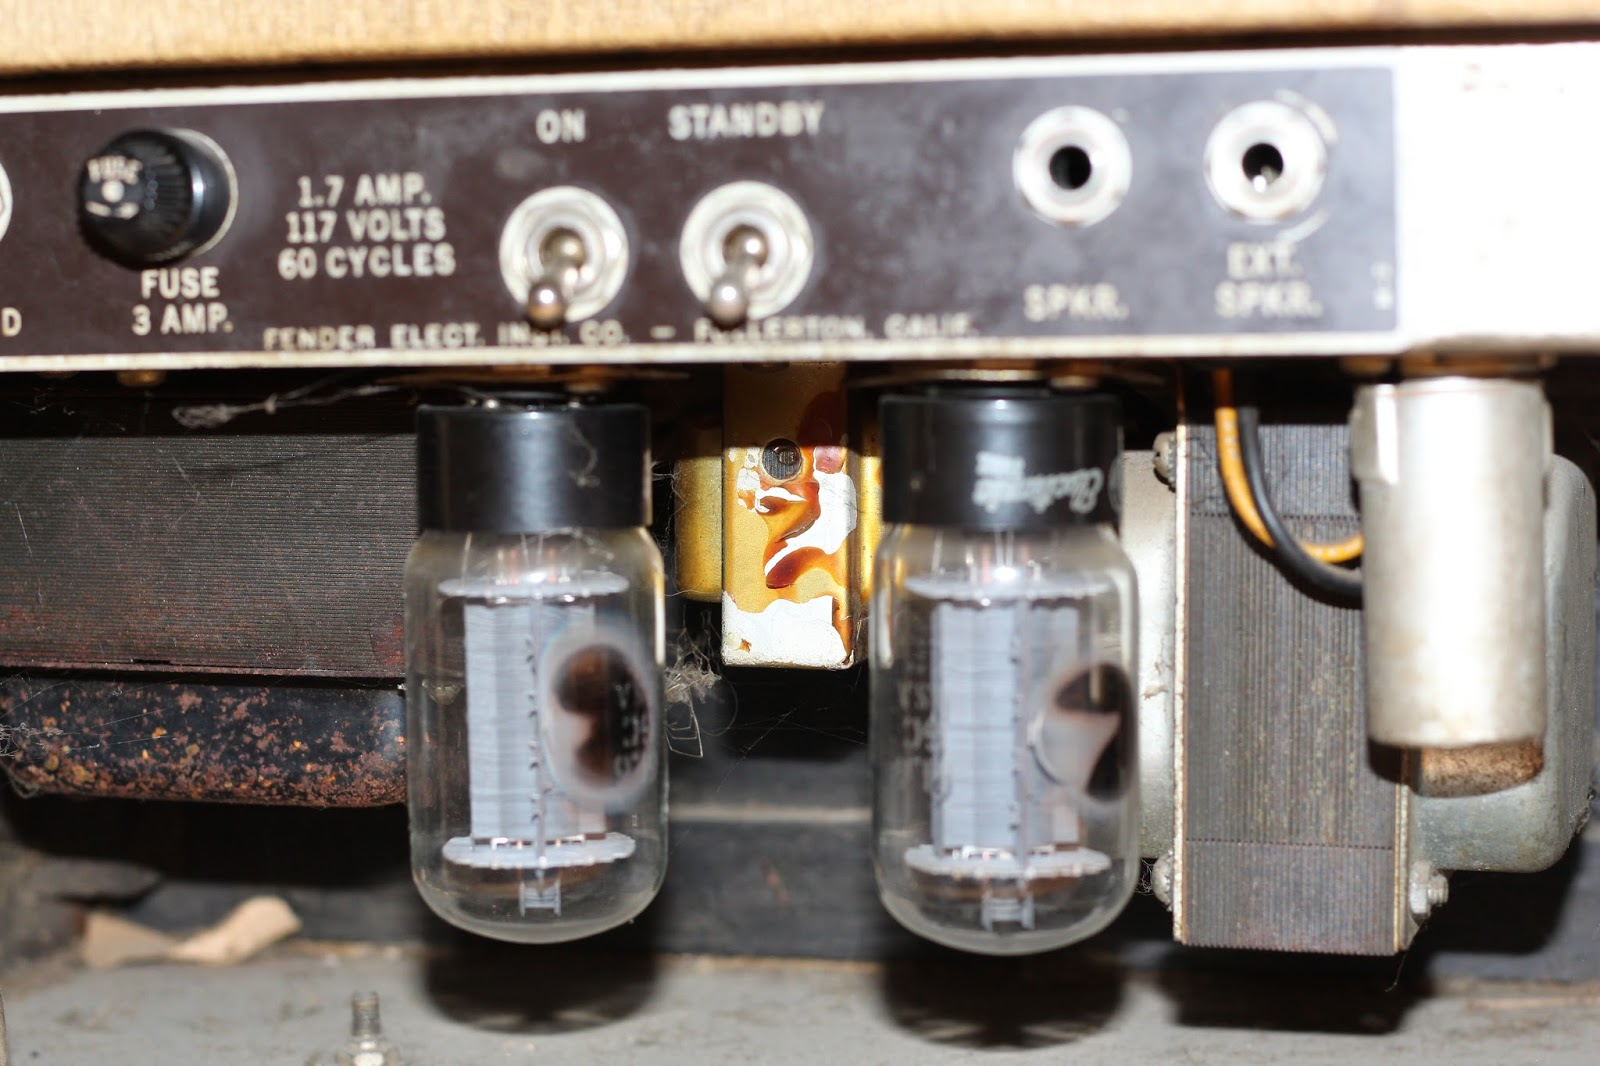 63 Fender Bassman Repair And Refurb 09 21 16 Dave Greens Blog Carrier Blowing 3 Amp Fuse The Modern Day Equivalent Is A 6l6gc Original Preamp Tubes Were 7025s Which Again Are No Longer Available Replacement 12ax7